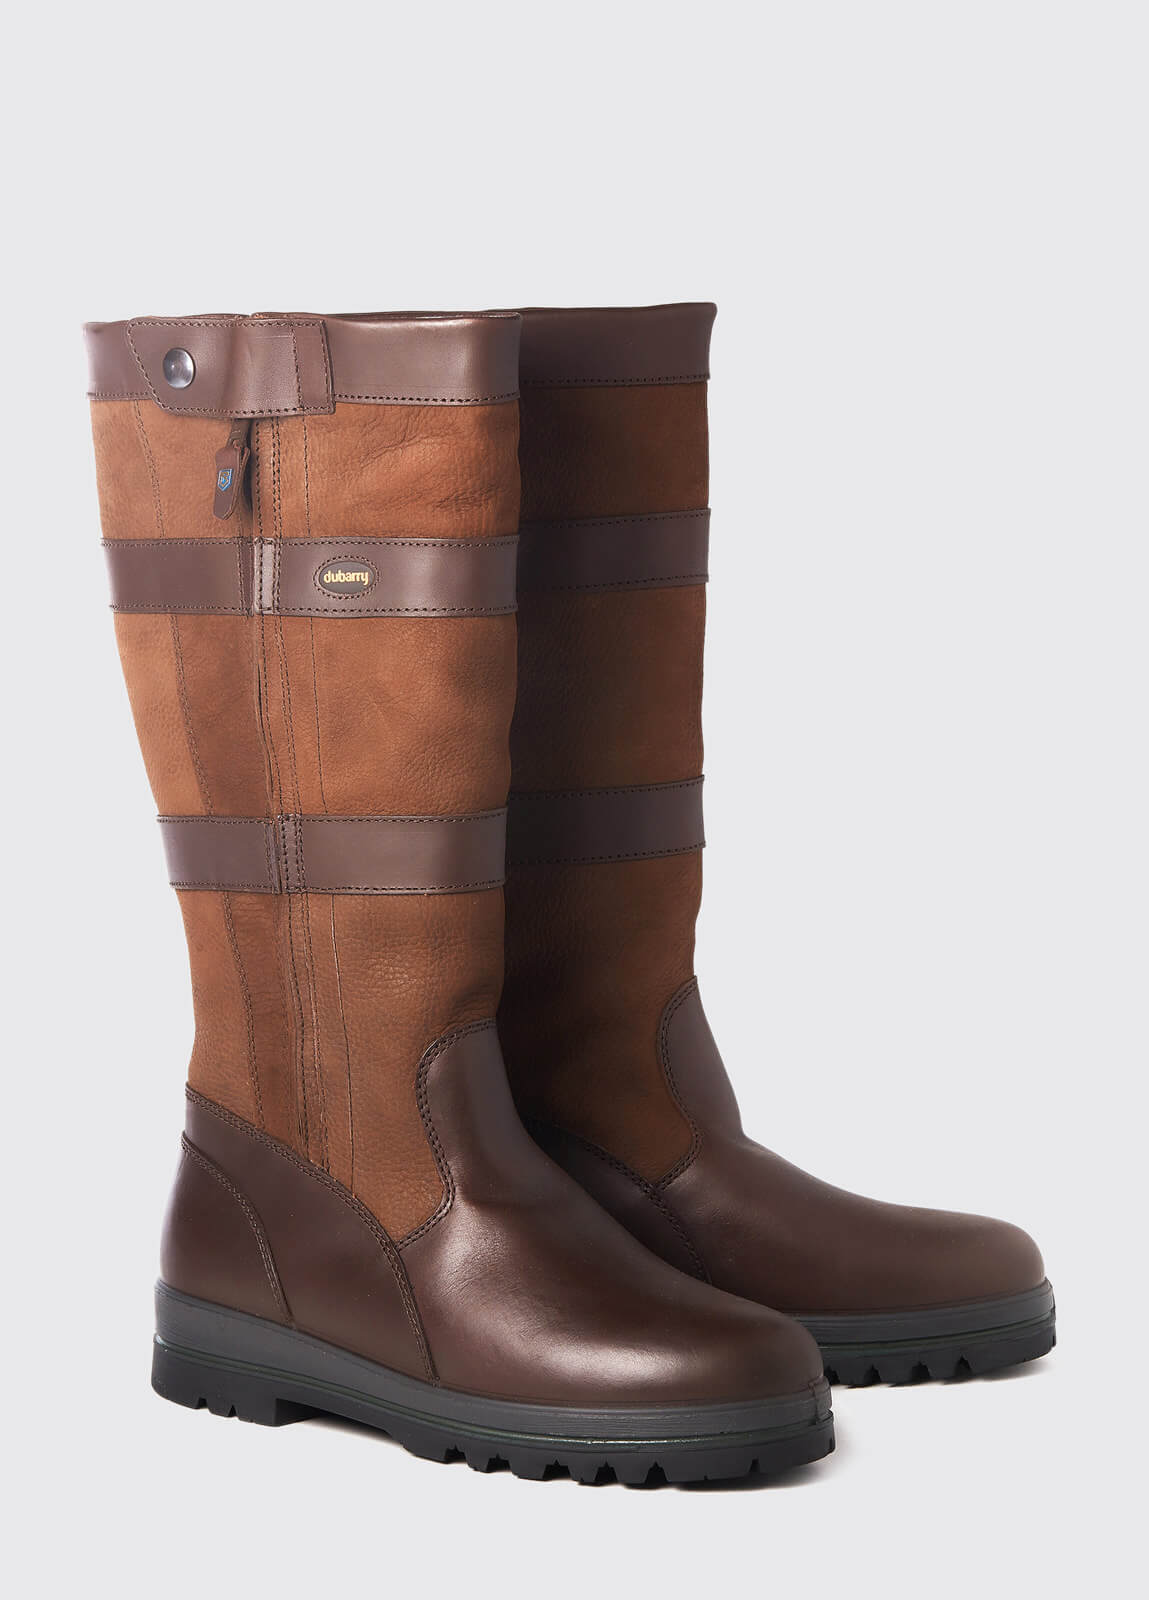 Wexford Country Boot - Walnut